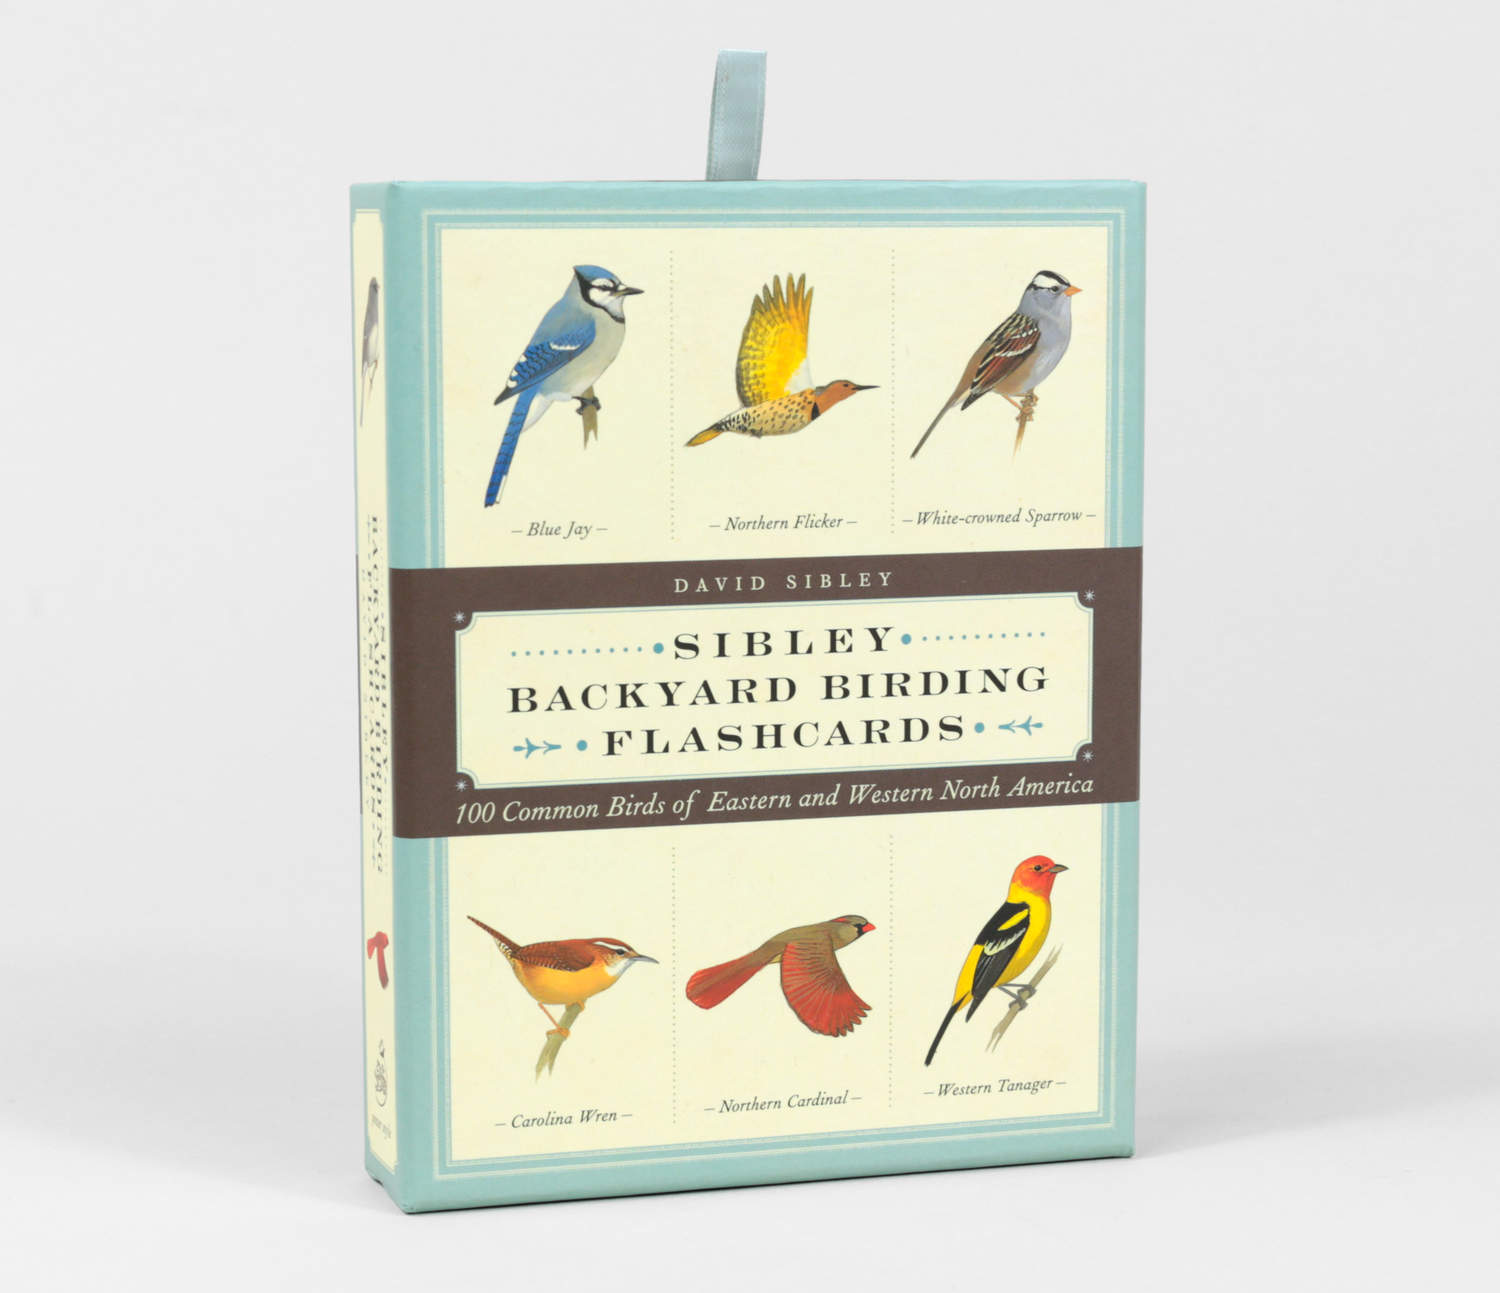 david sibley sibley backyard birding flashcards at buyolympia com